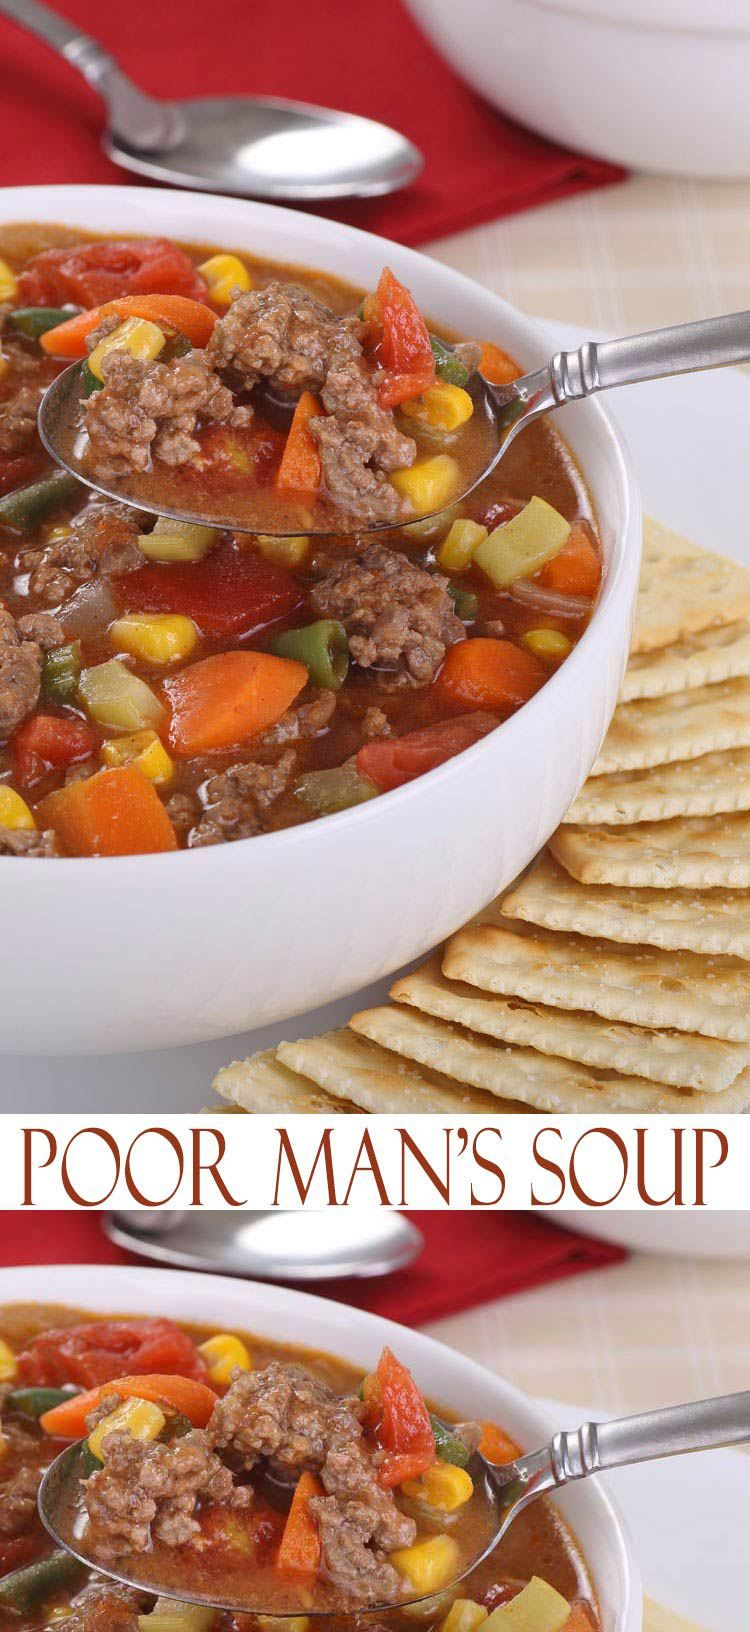 Poor mans soup recipe poor mans soup recipe is a simple soup poor mans soup recipe poor mans soup recipe is a simple soup recipe with budget ingredients that is easy to make forumfinder Gallery